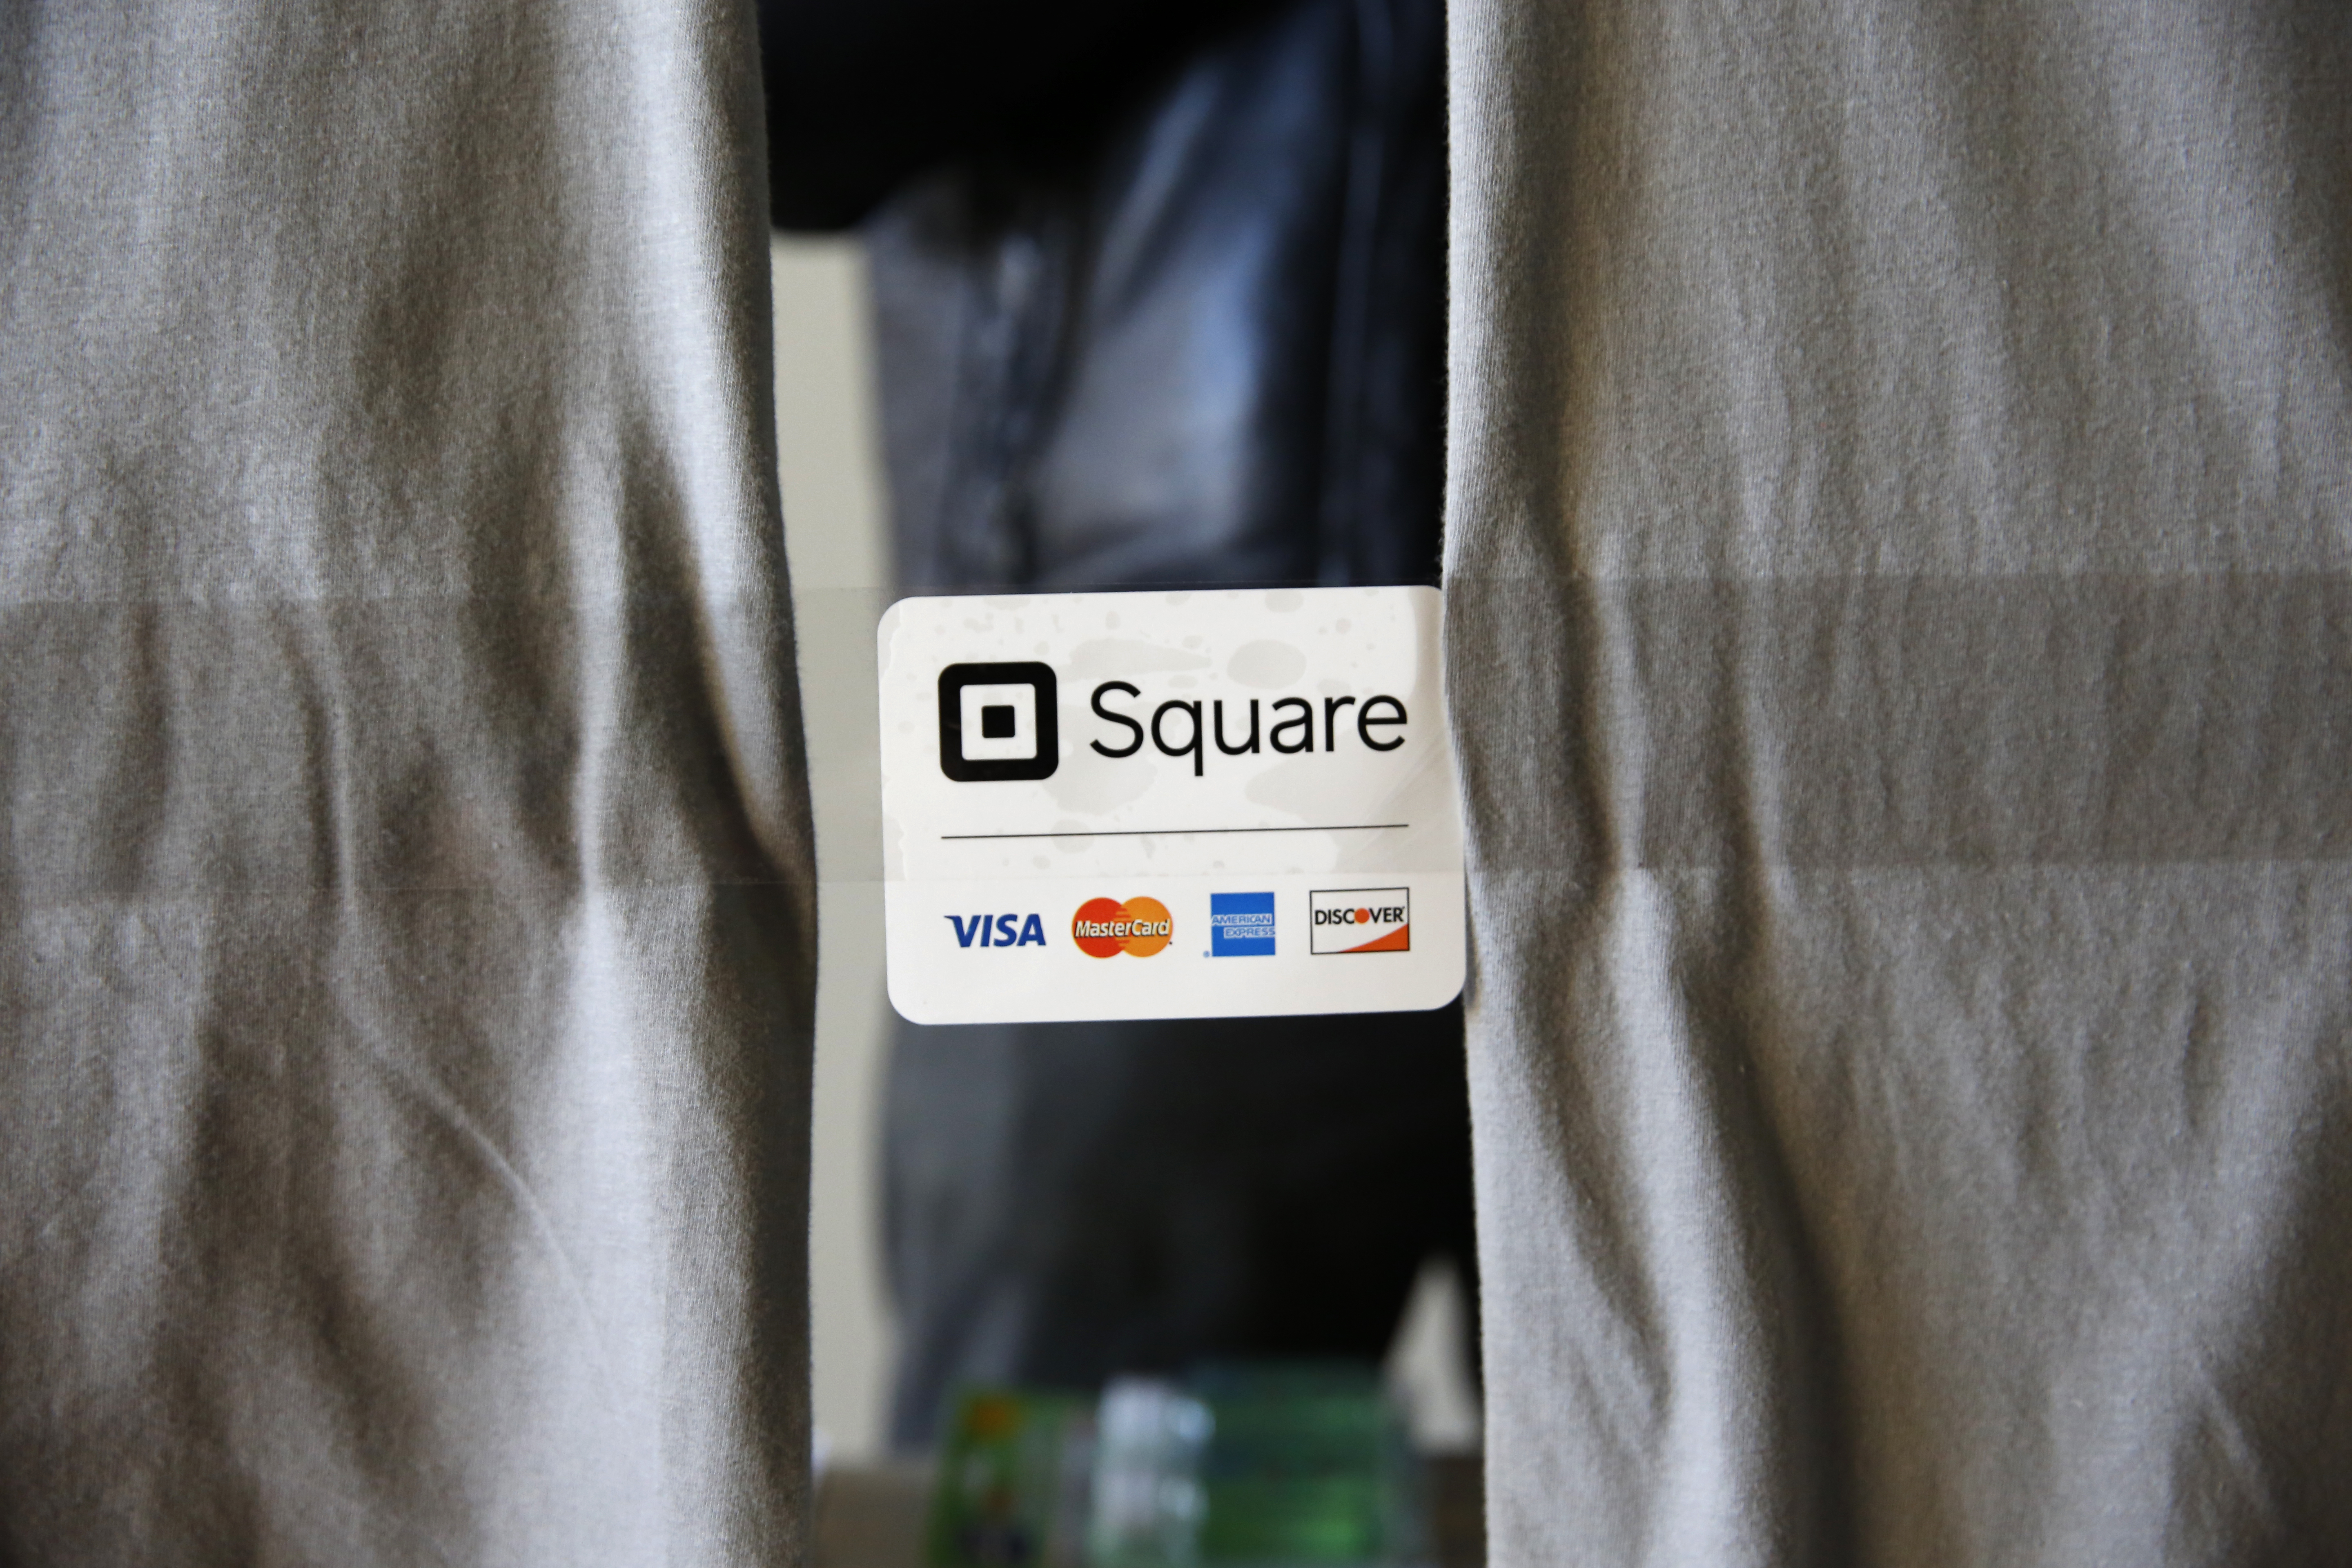 Square will pay $29 billion to acquire leading 'buy now, pay later' company Afterpay